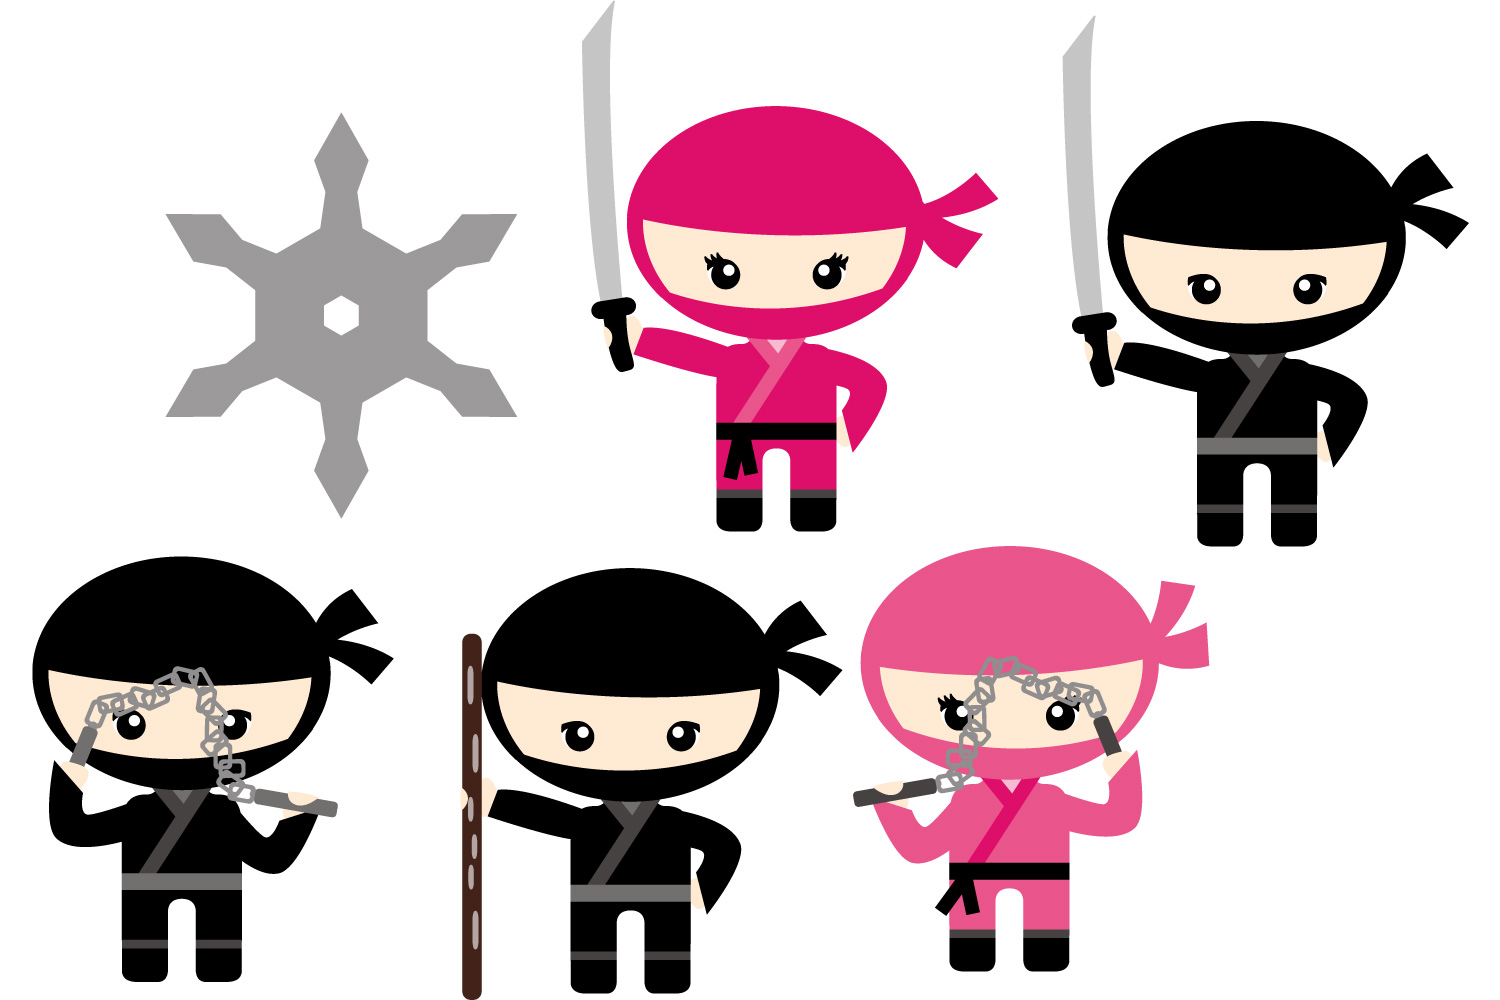 1500x1000 Cute Ninja Boys Girls, Black Pink, Grap Design Bundles